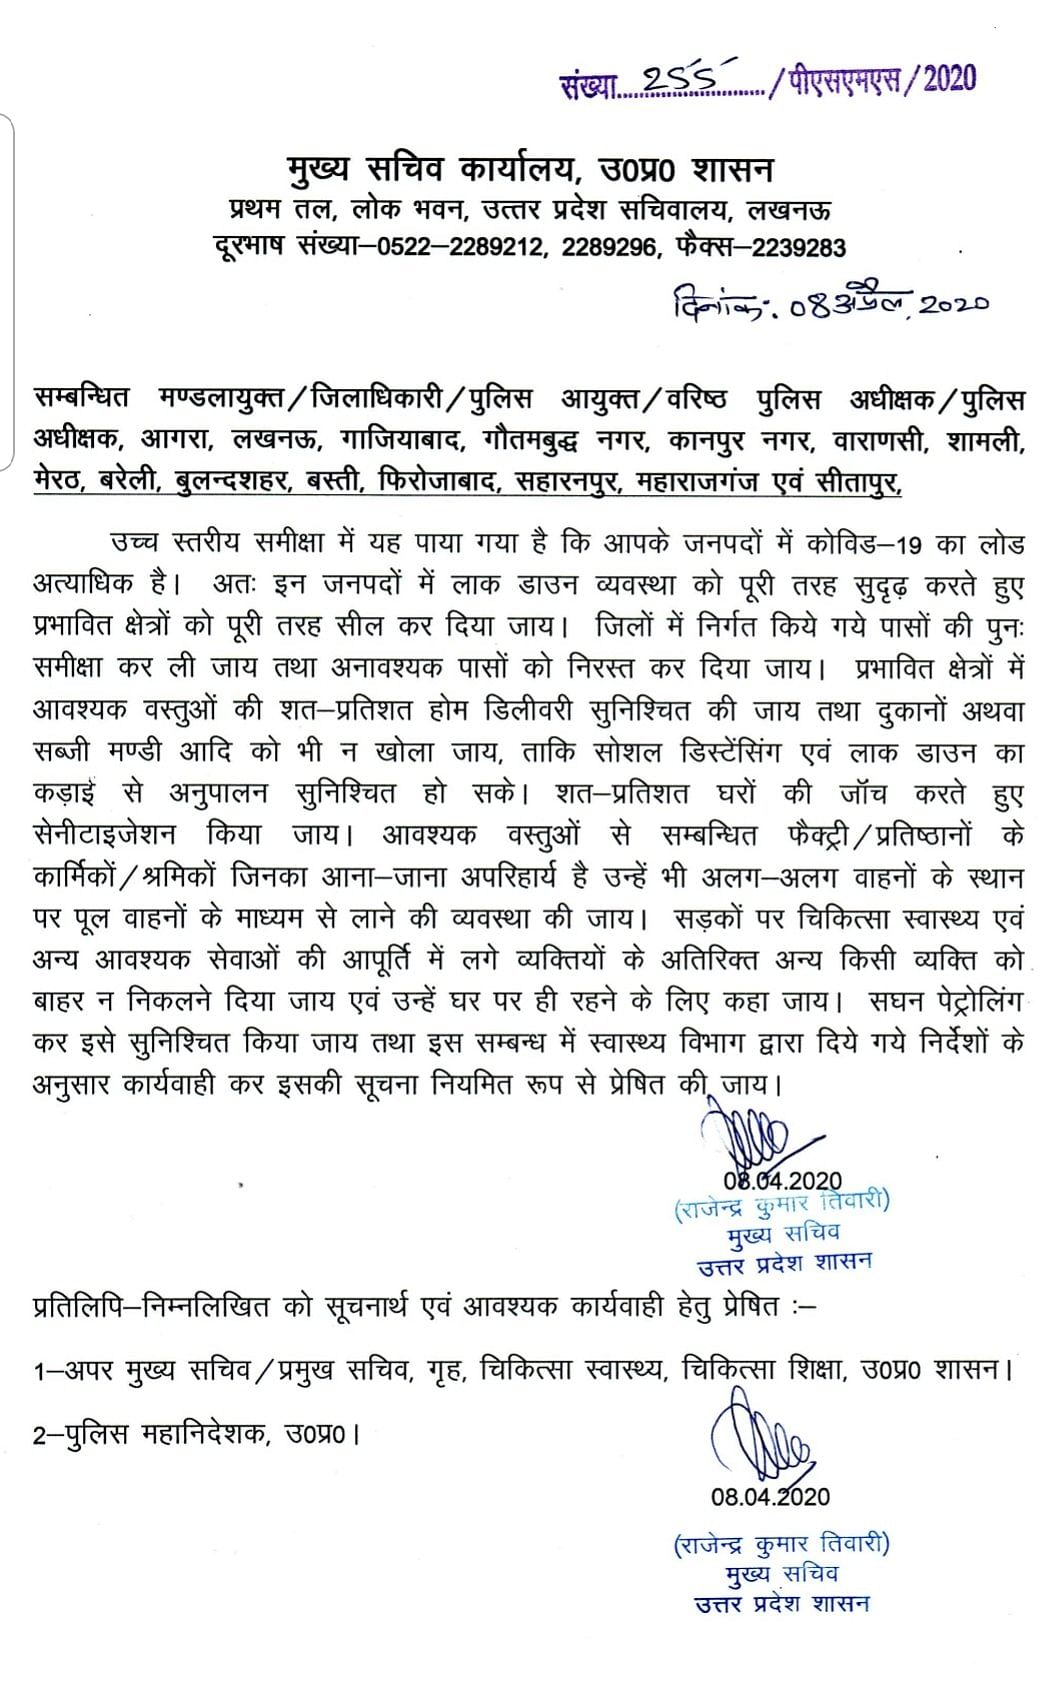 Letter issued from the office of UP's Chief Secretary.